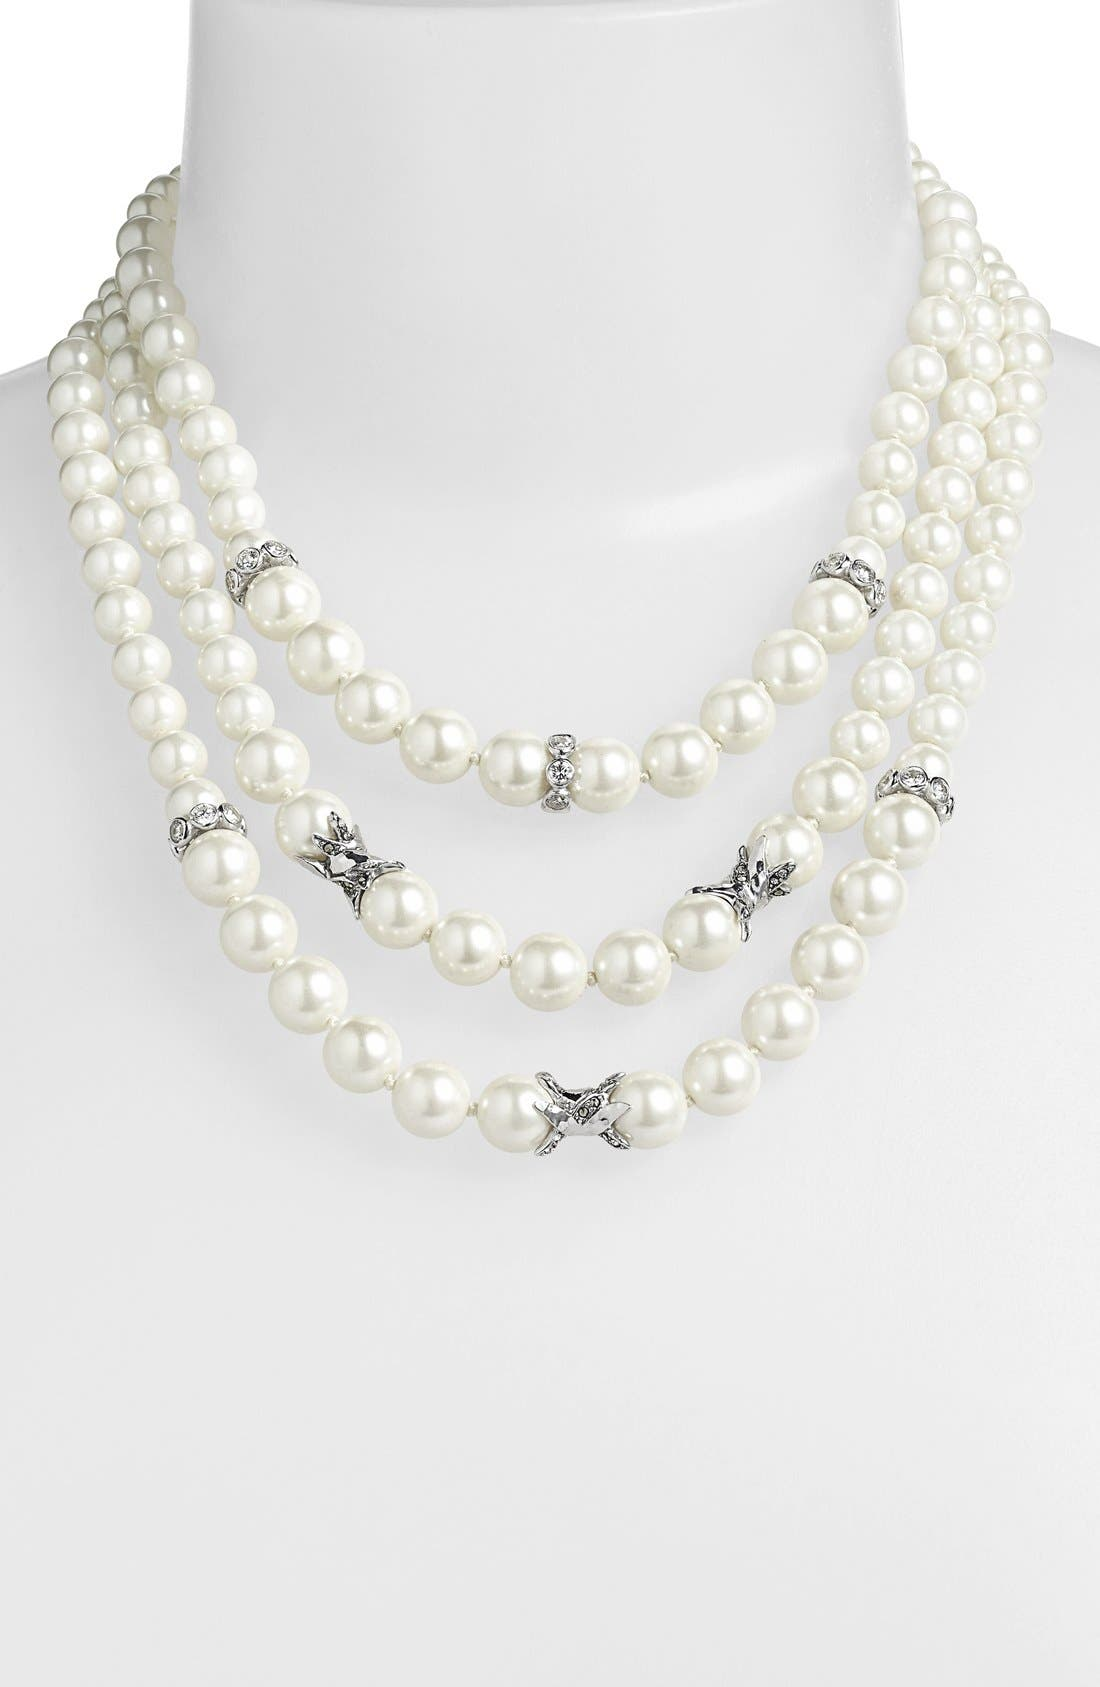 Alternate Image 1 Selected - Judith Jack 'Pearl Romance' Faux Pearl Multistrand Necklace